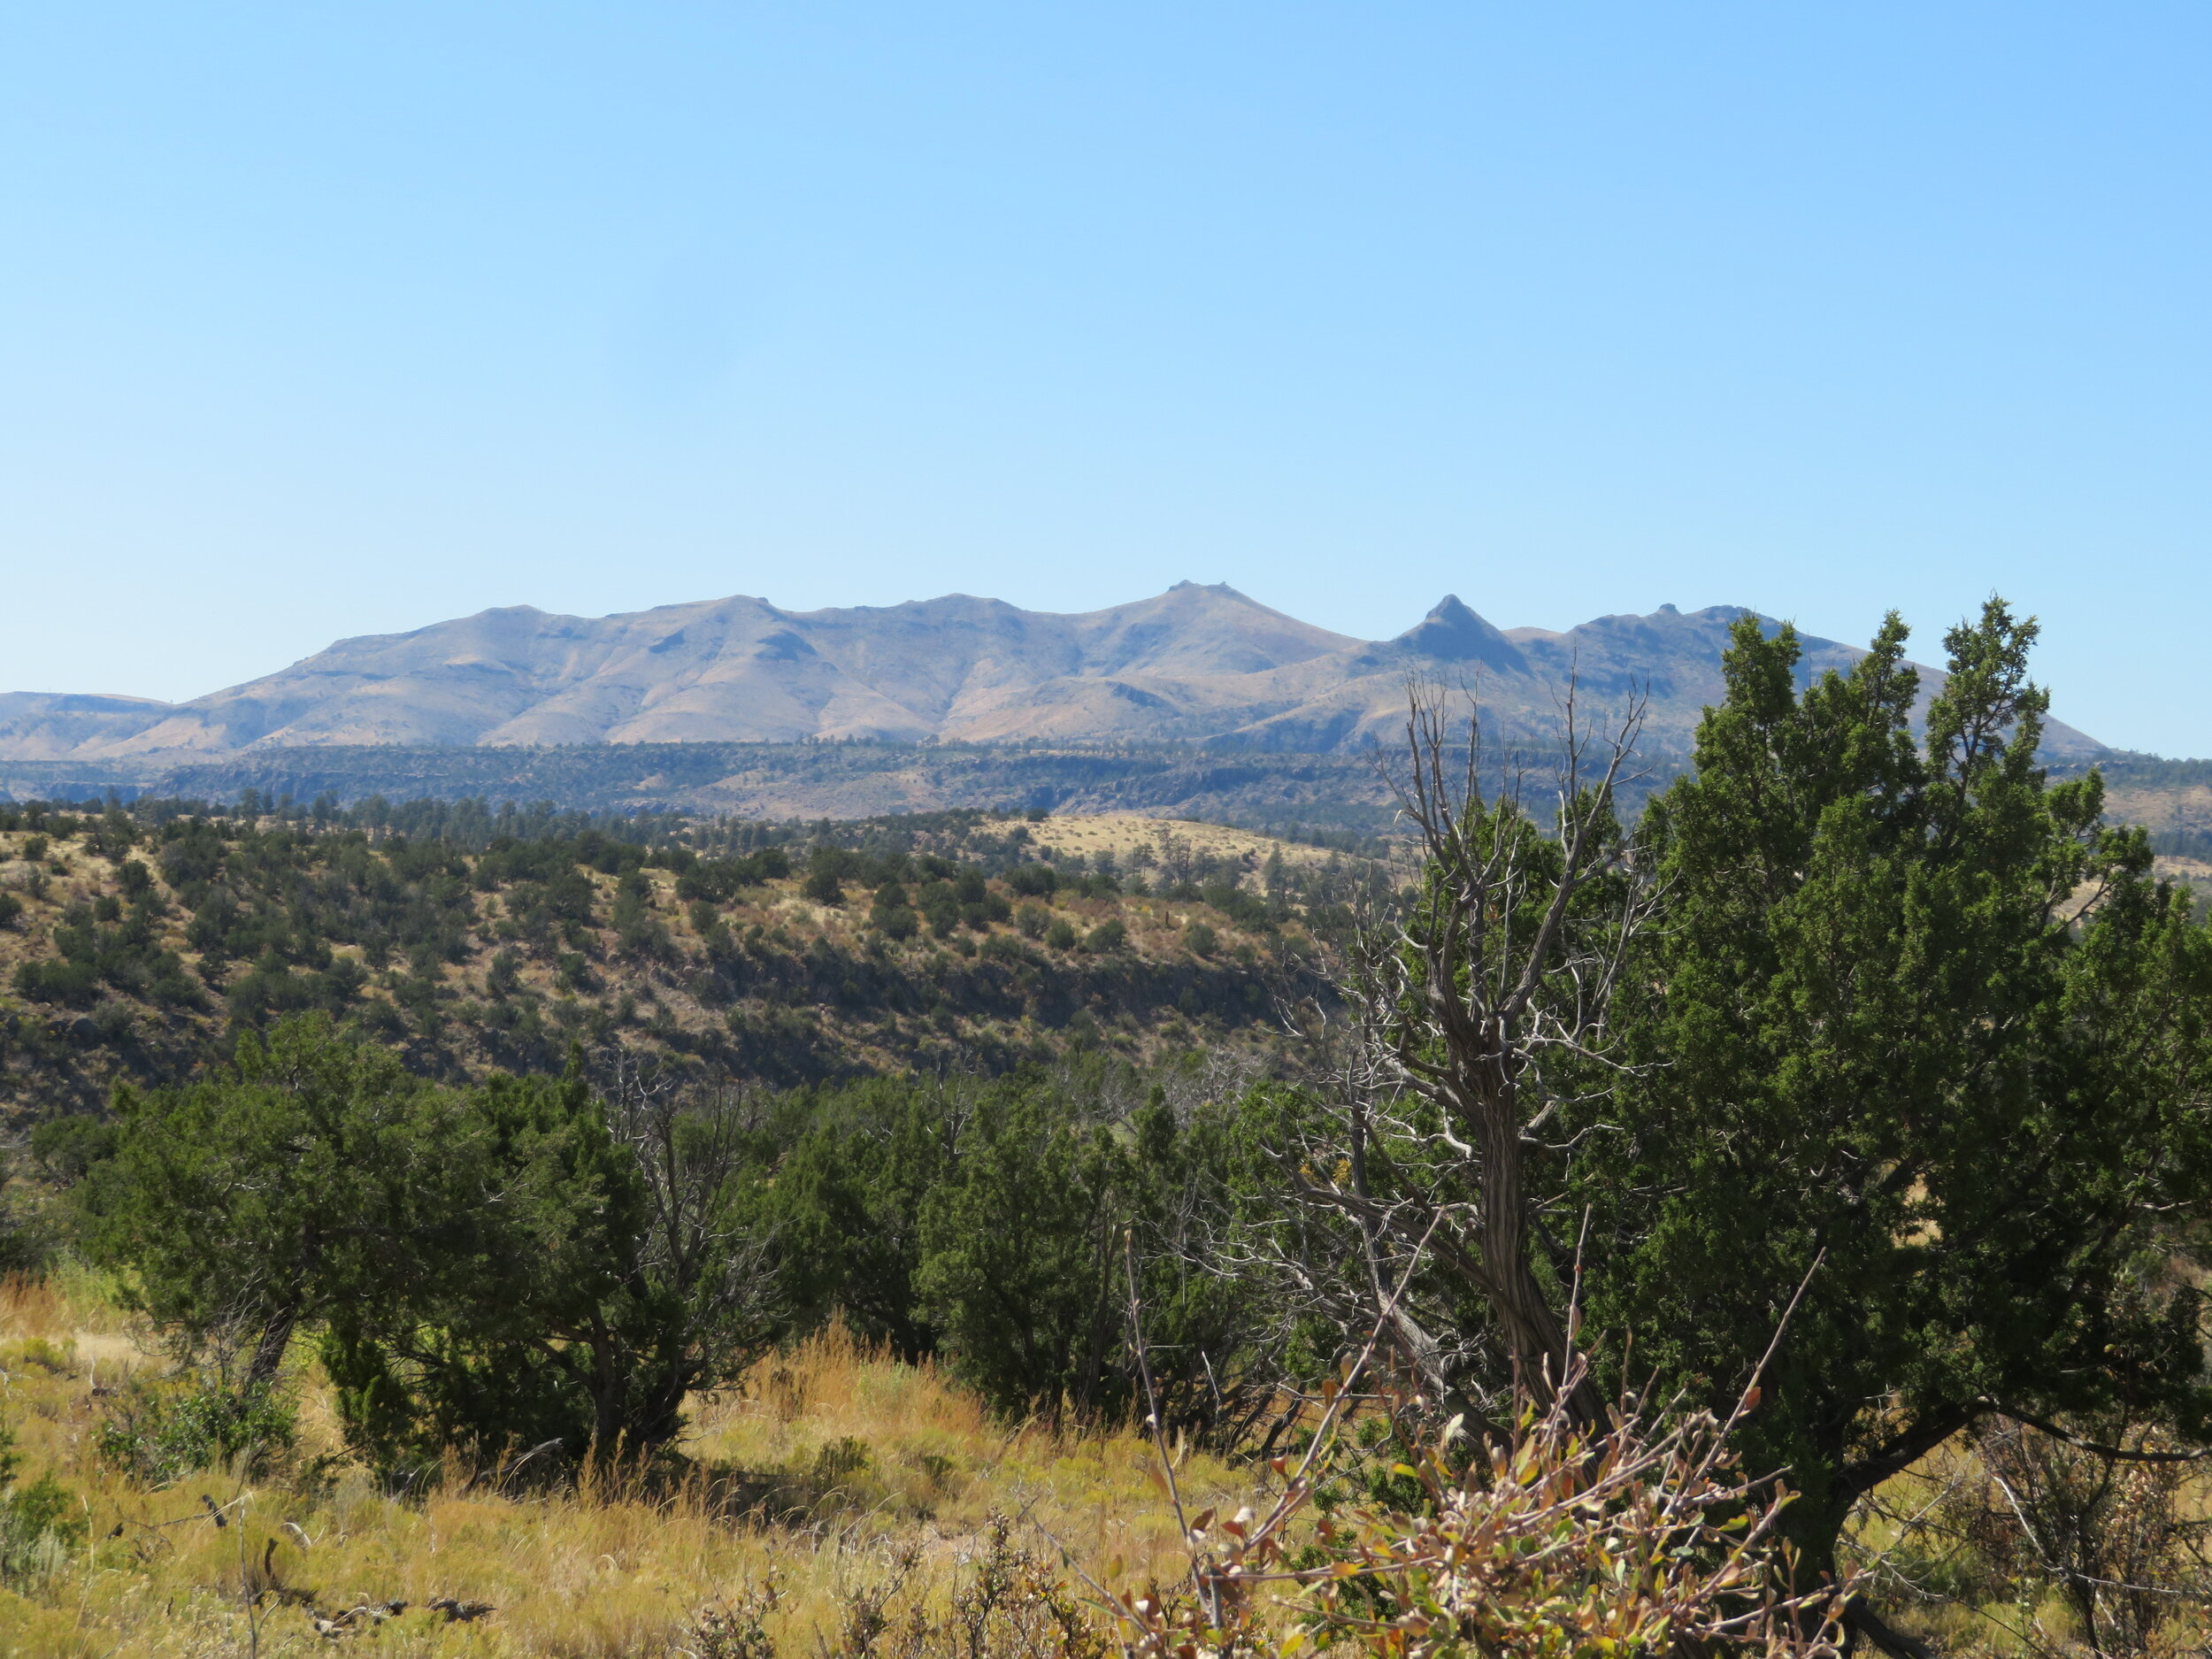 Jemez Mountain view from the Frijoles Rim Trail